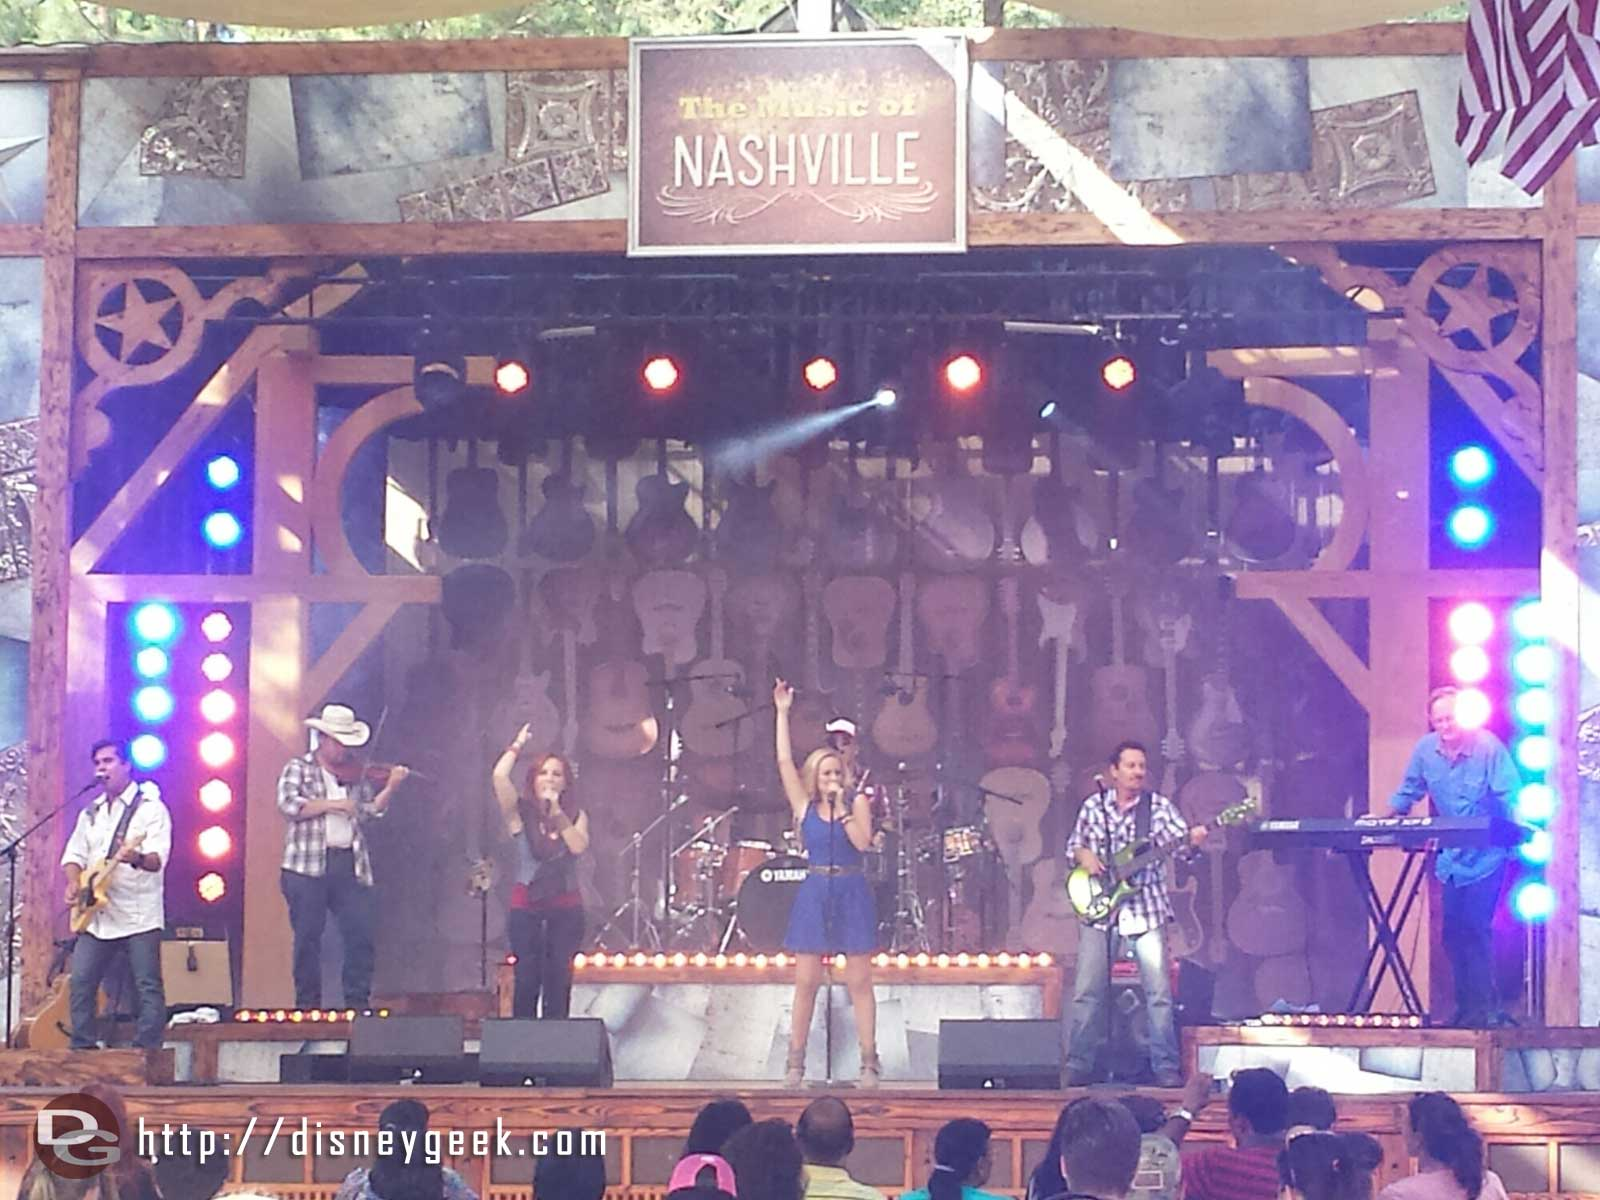 Stopped by to catch the last set of the Music of Nashville at the Big Thunder Ranch Jamboree #Disneyland